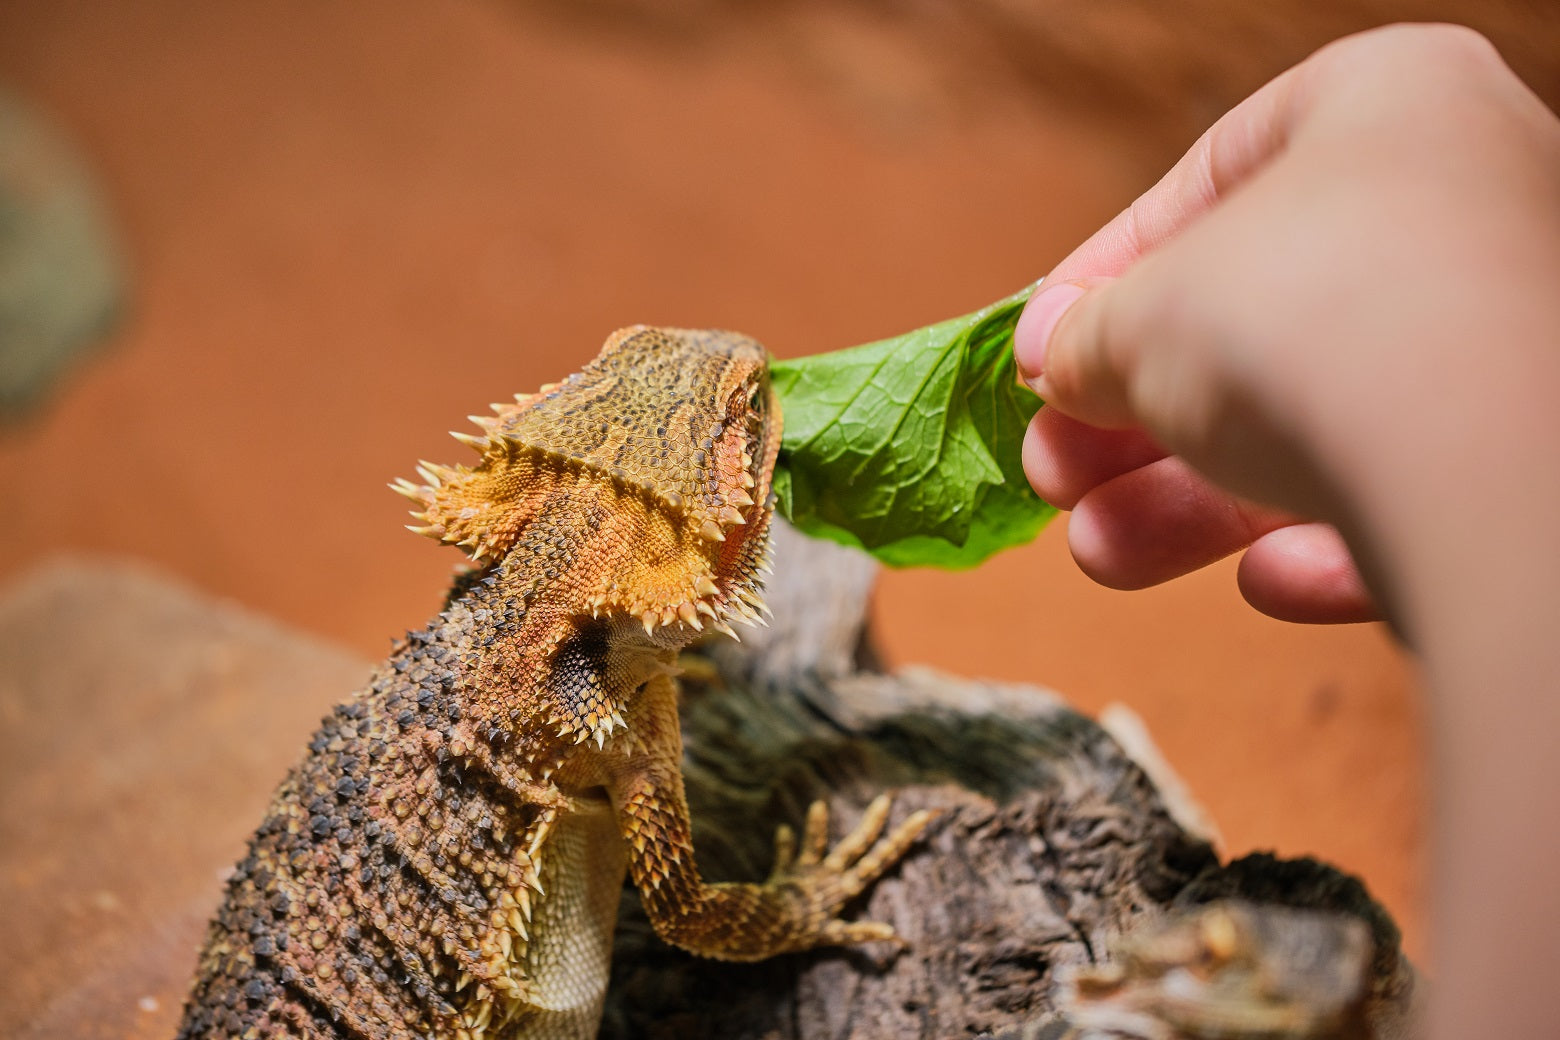 When Can a Bearded Dragon Eat Vegetables?